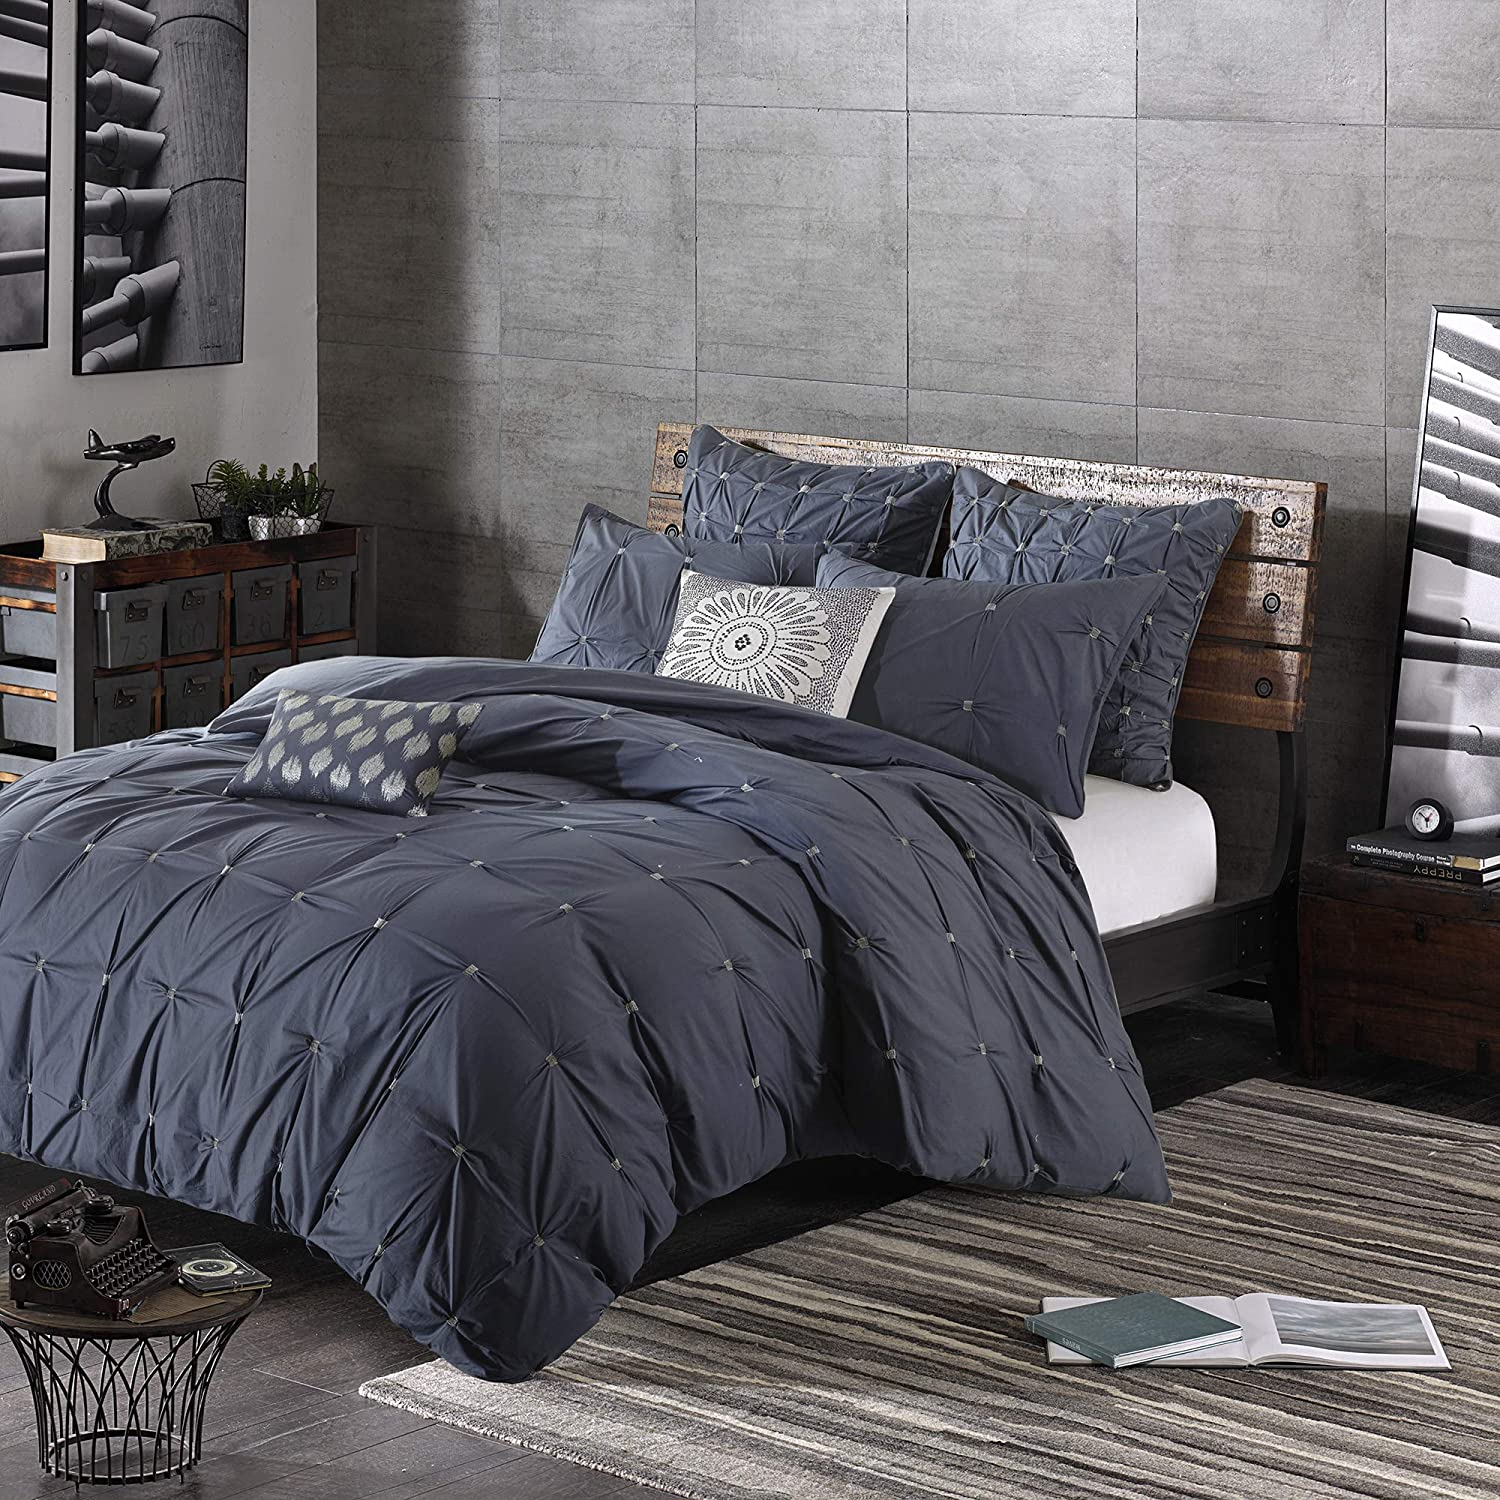 Ink+Ivy Masie Duvet Cover Full Queen Size - Navy, Elastic Embroidery Tufted Ruffles Duvet Cover Set – 3 Piece – 100% Cotton Percale Light Weight Bed Comforter Covers